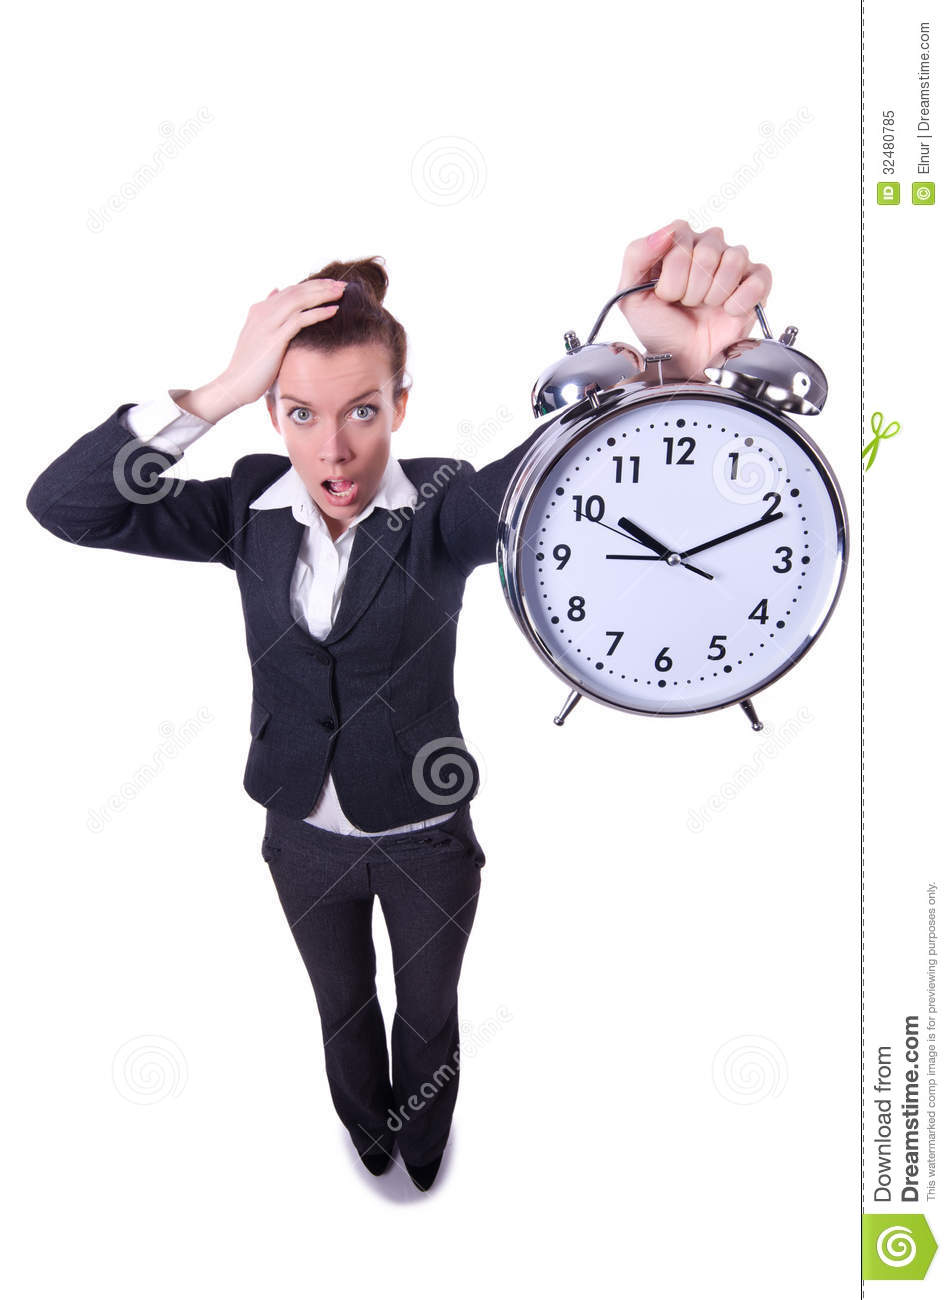 Royalty Free Stock Photo Funny Woman Clock White Image32480785 on Busy Binder